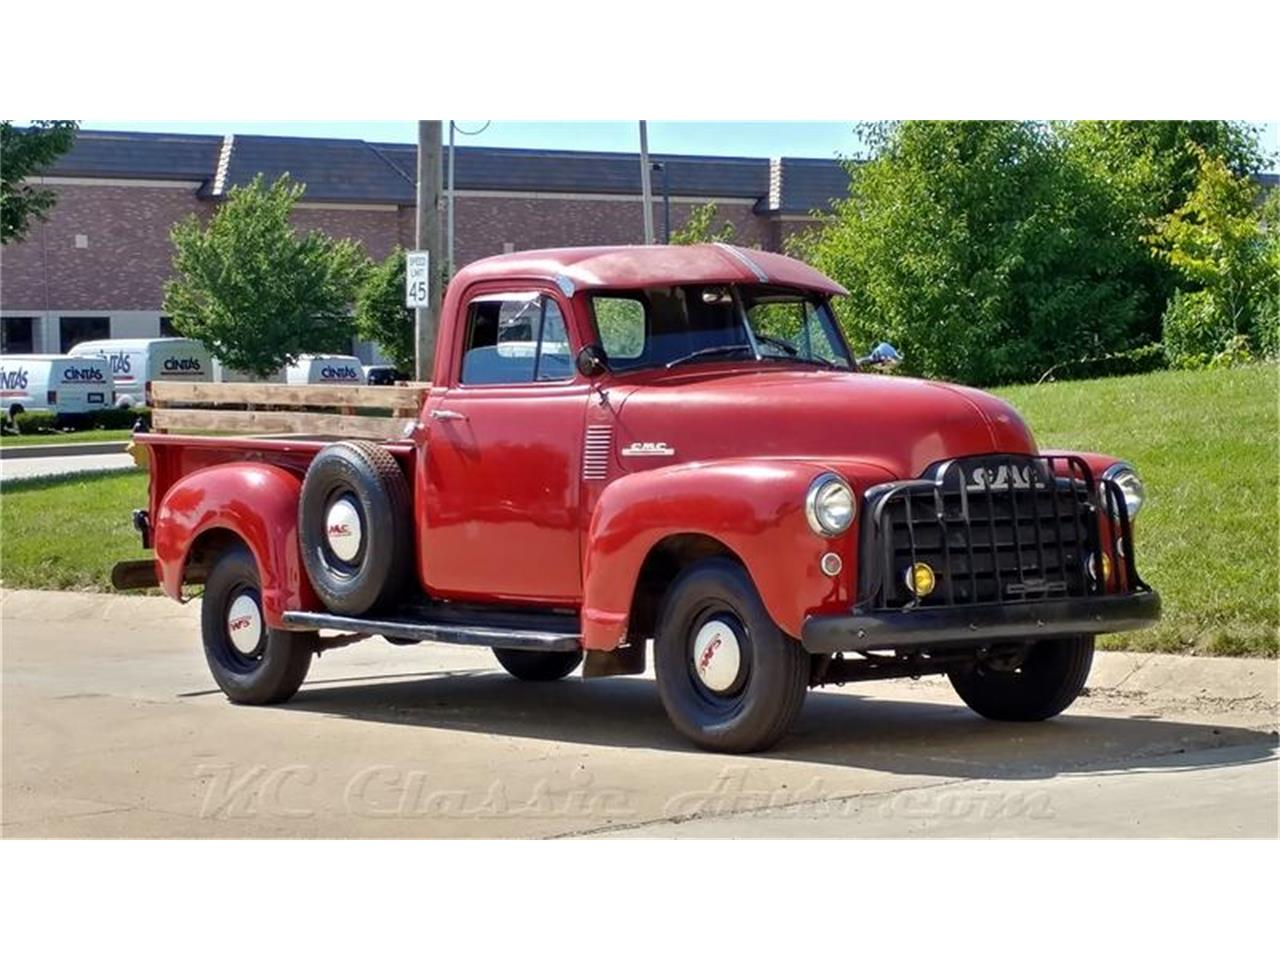 1953 Gmc Hydra Matic For Sale The Car 1954 Chevy 3100 Pick Up Truck 53 Pickup 1948 Photos Source